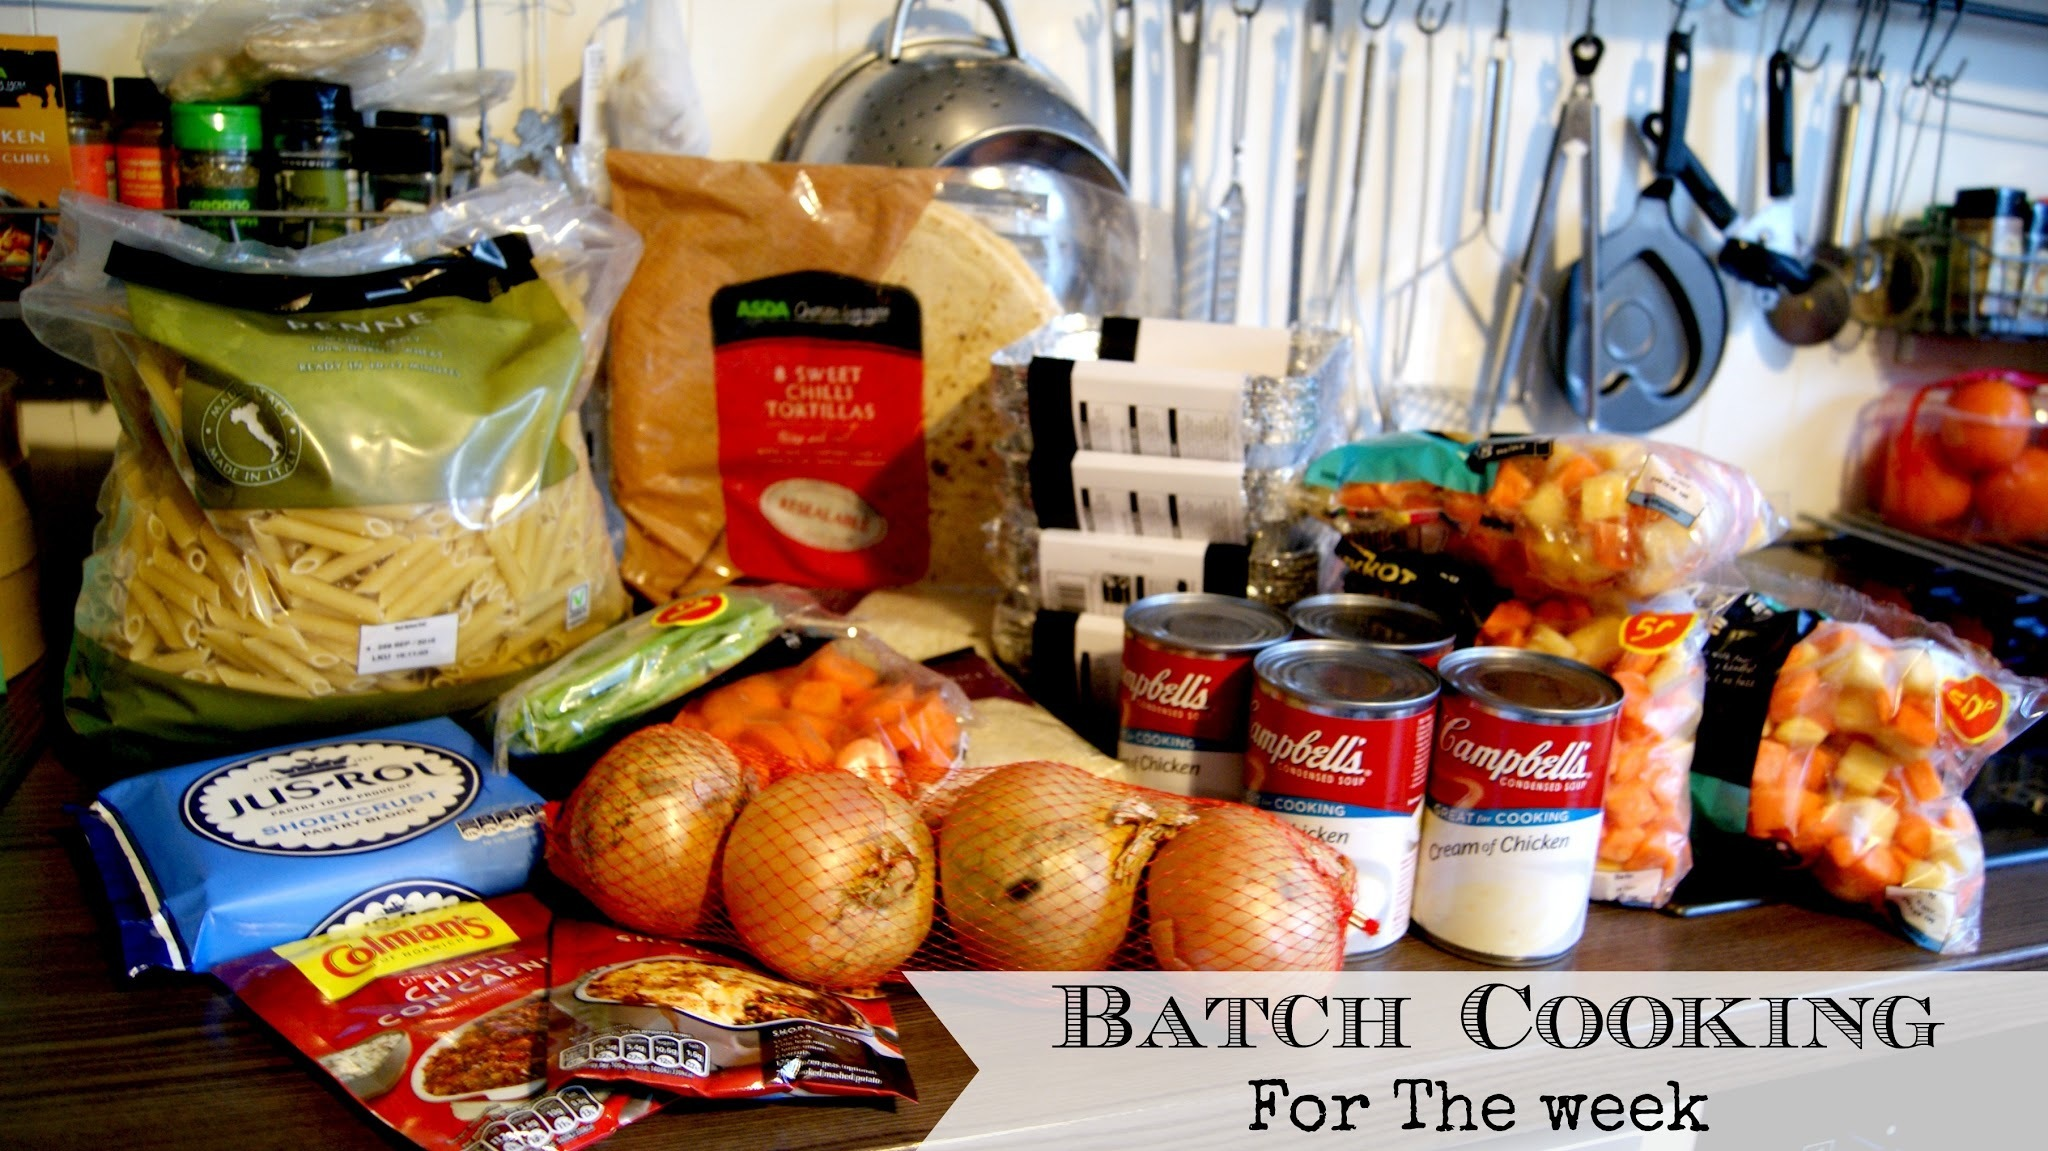 Cooking On A Budget - Easy Batch Cooking For The Week